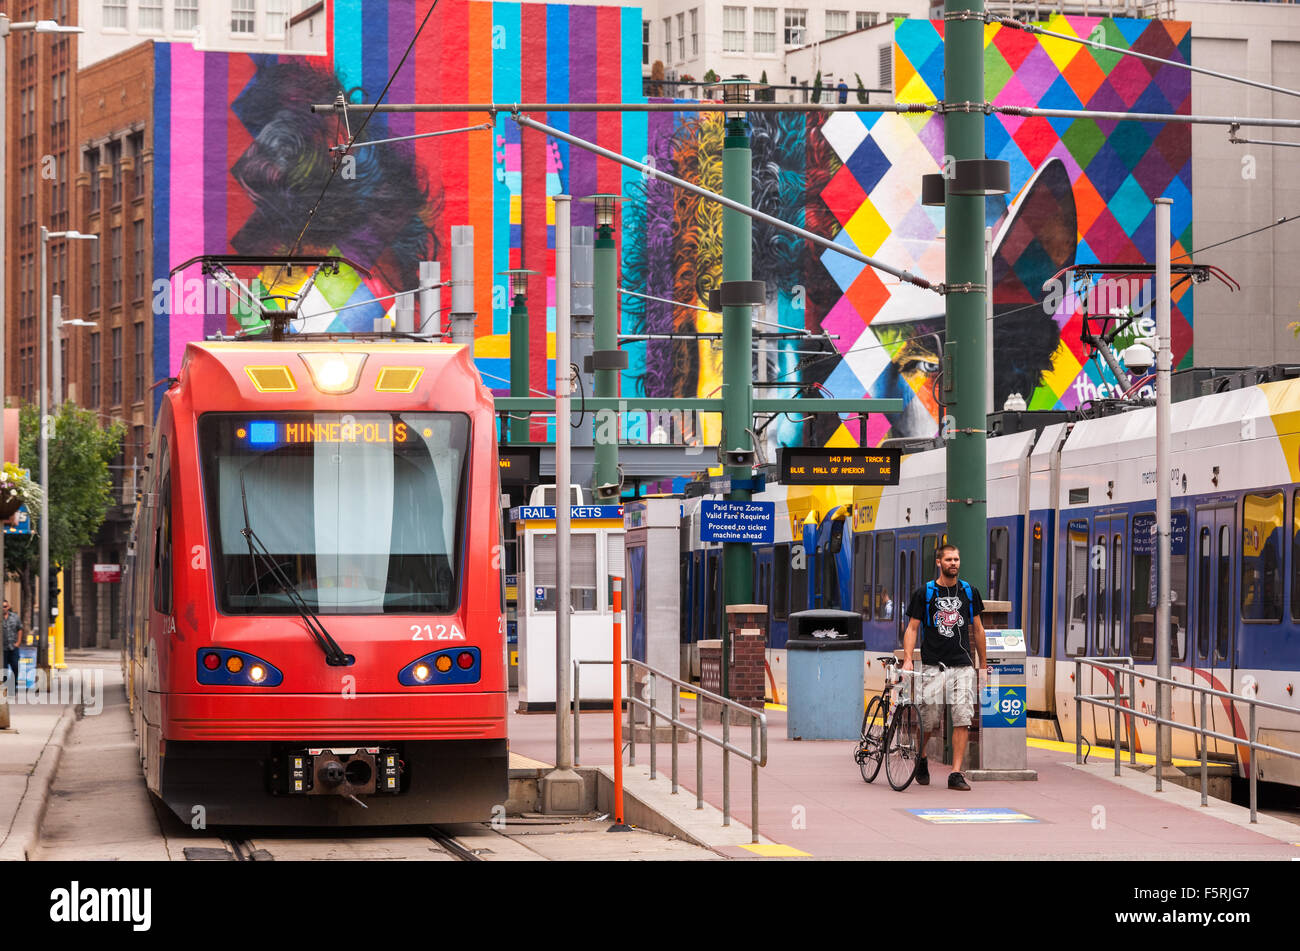 Downtown Minneapolis. Metro Transit Blue Line Hiawatha Light Rail at Warehouse Hennepin stop. Bob Dylan Mural in - Stock Image